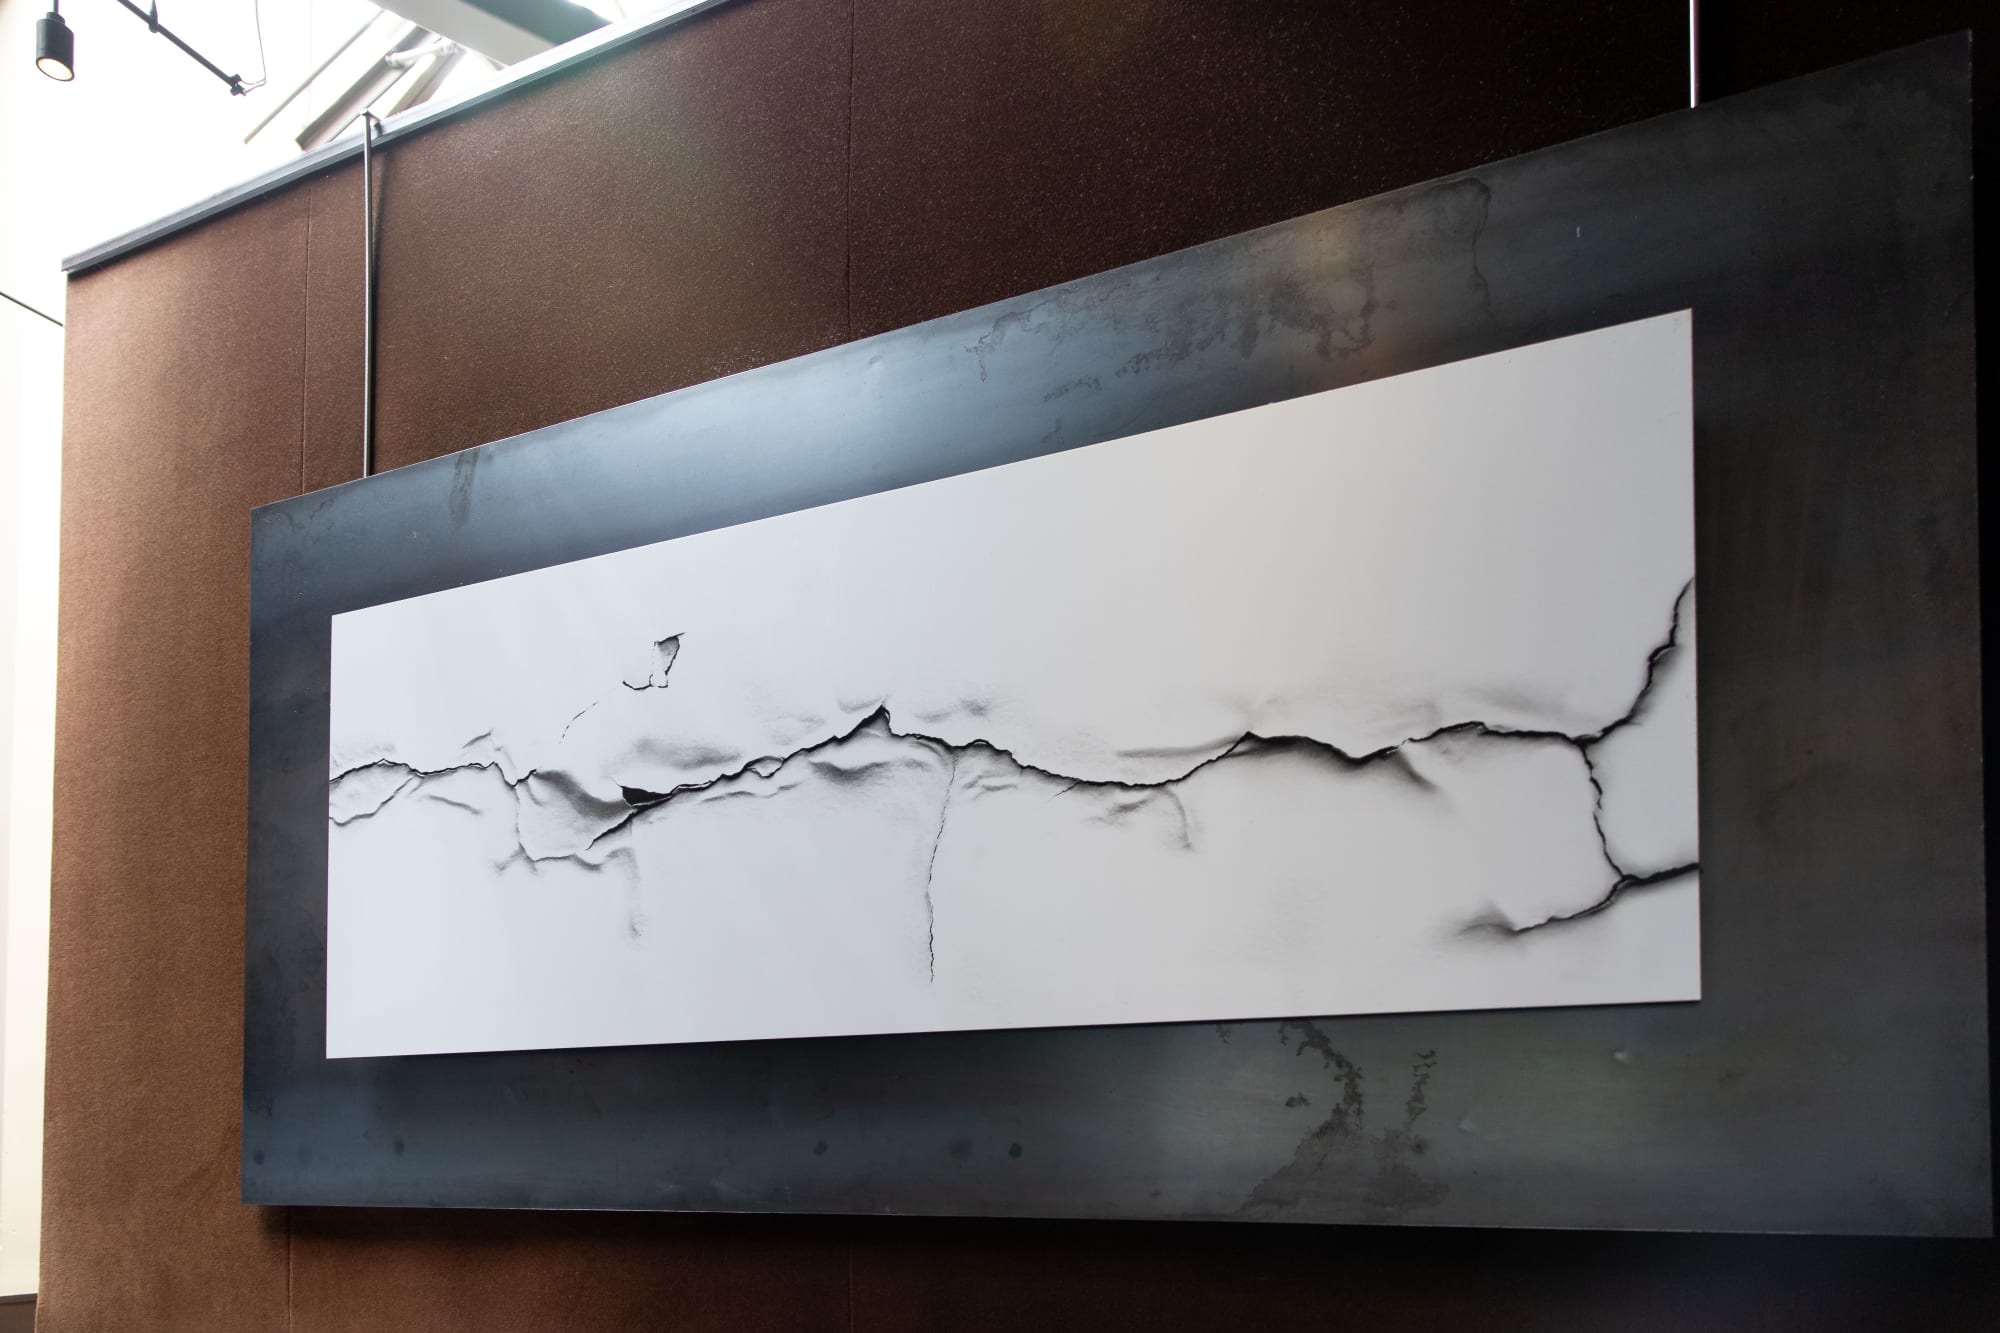 Photography by Durwood Zedd seen at Spruce, San Francisco - Crack - White